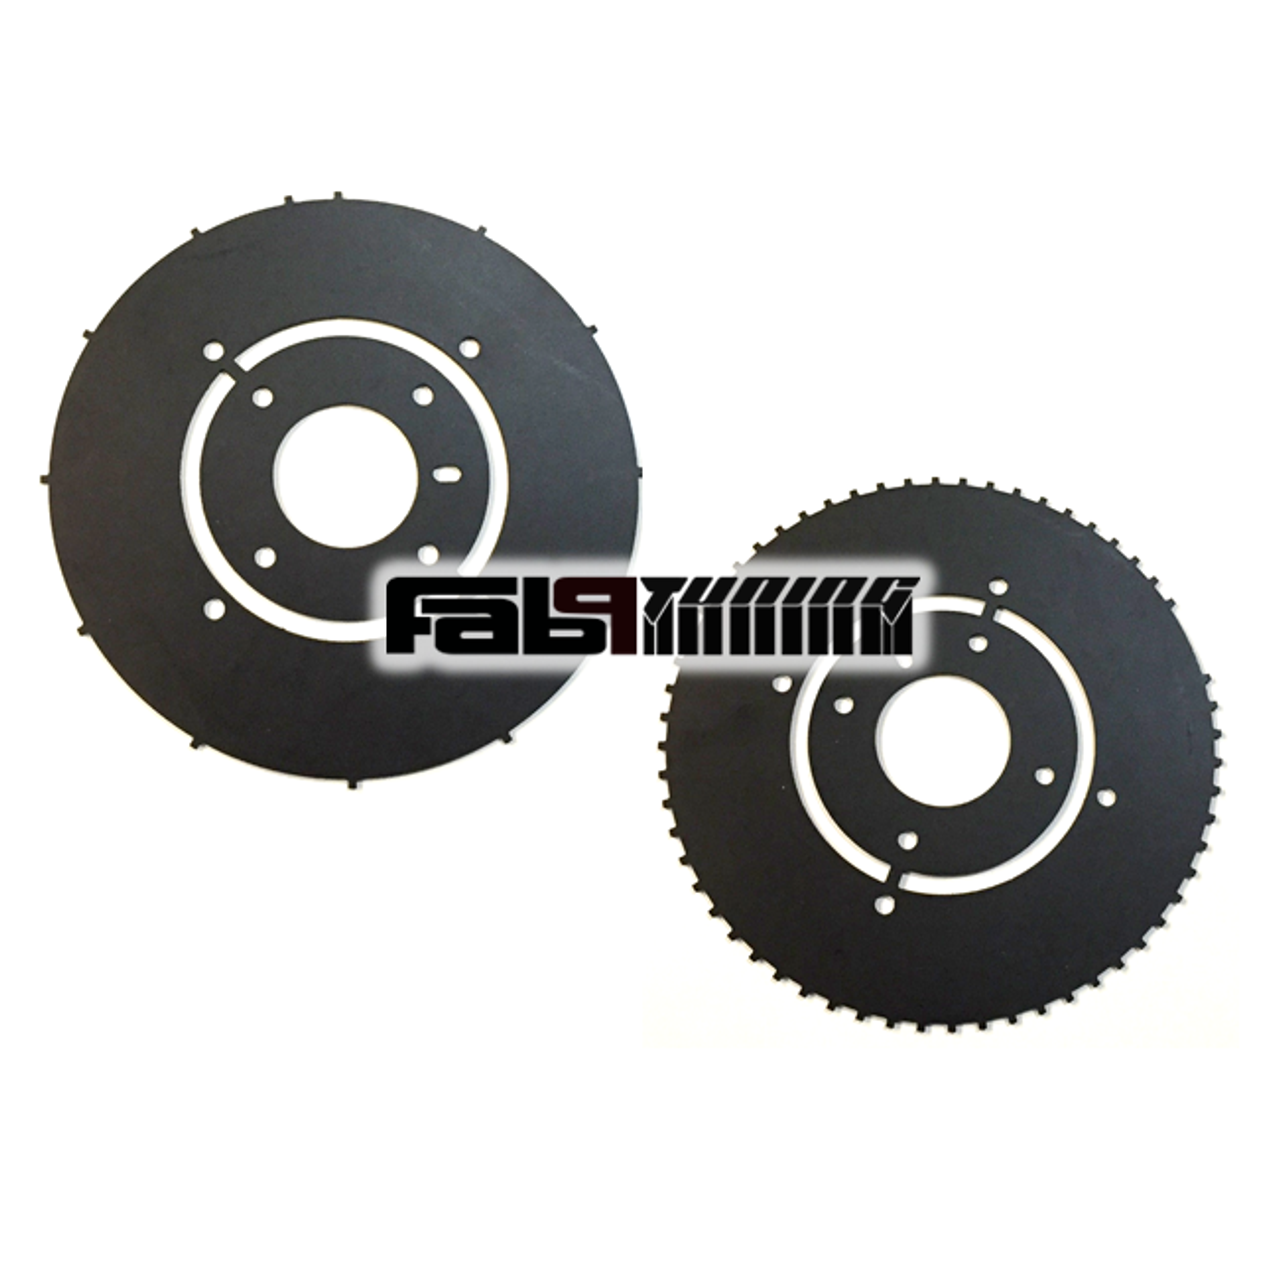 BP Trigger Wheels - For use with Stock or ATI Dampers